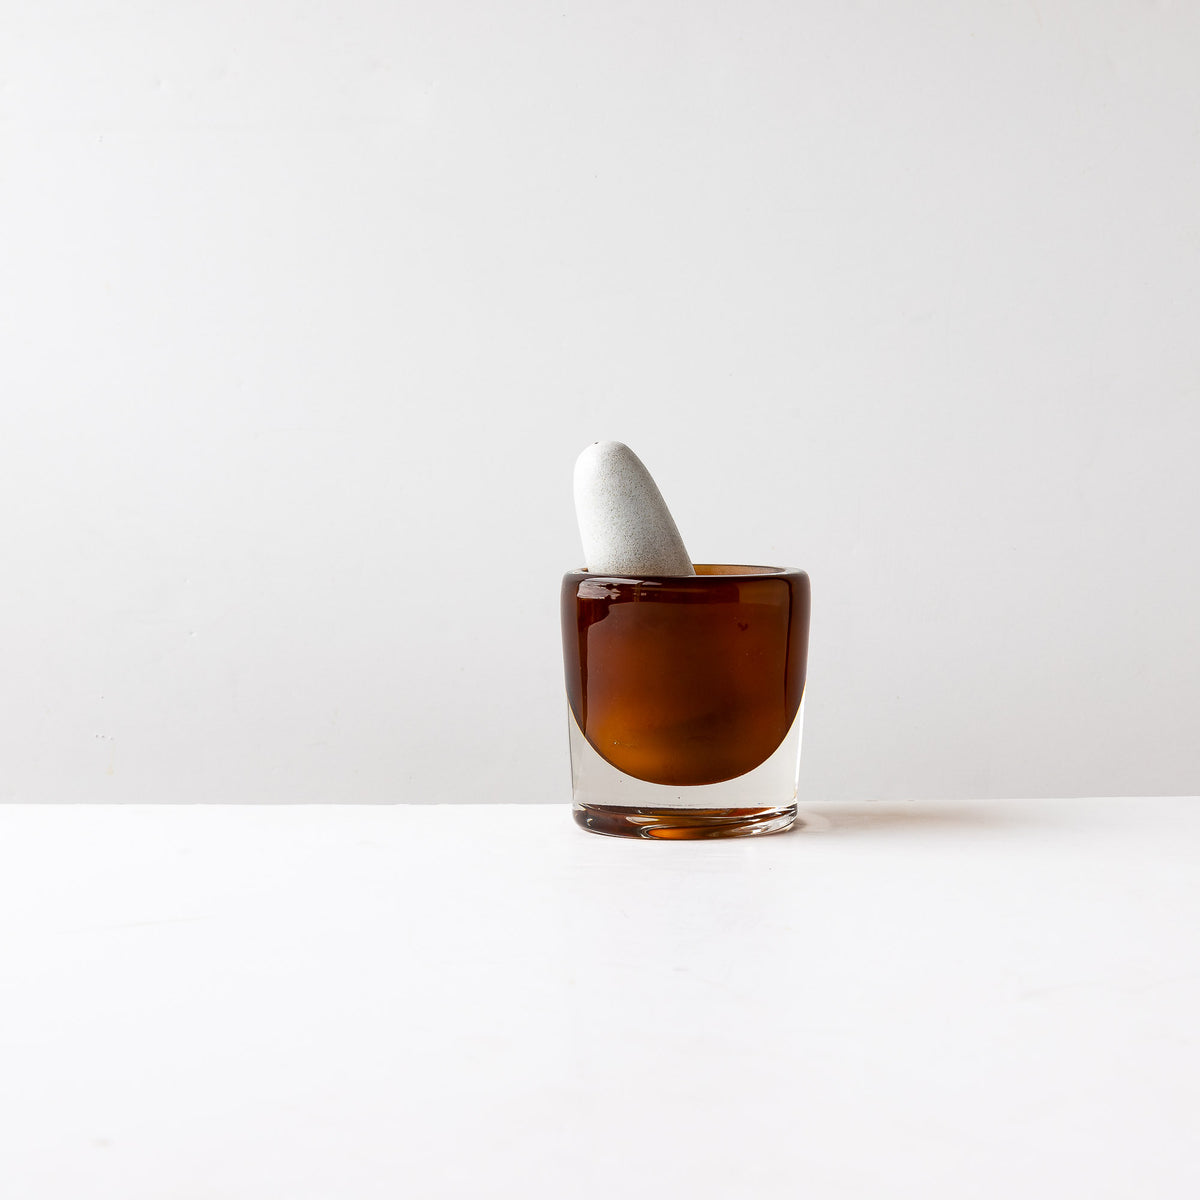 Amber Pestle & Mortar - Sold by Chic & Basta